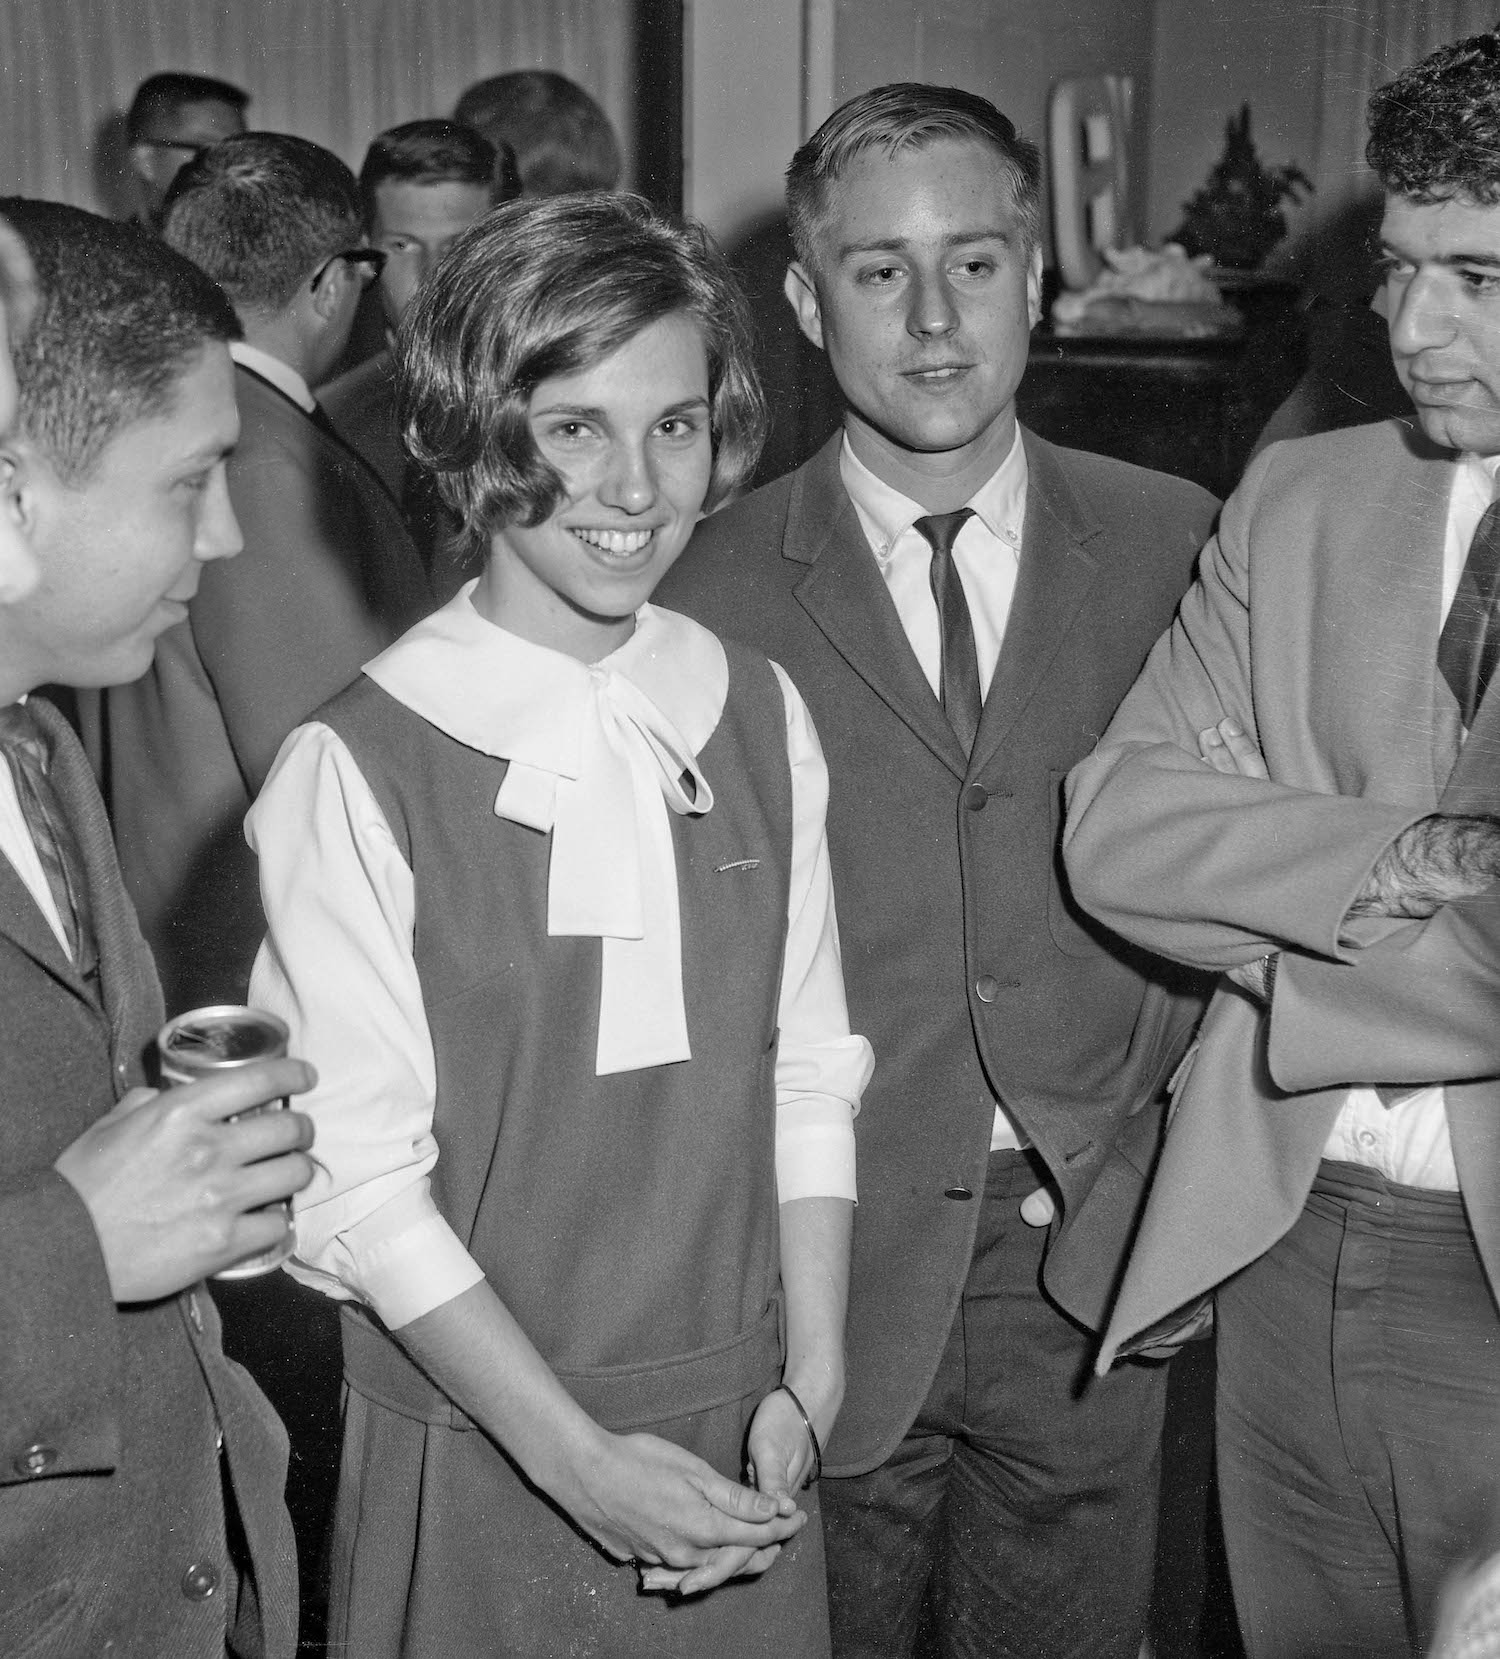 Spring 1964--Student Social, Linda and James with Mike on left and Sam on right, Fresno State College